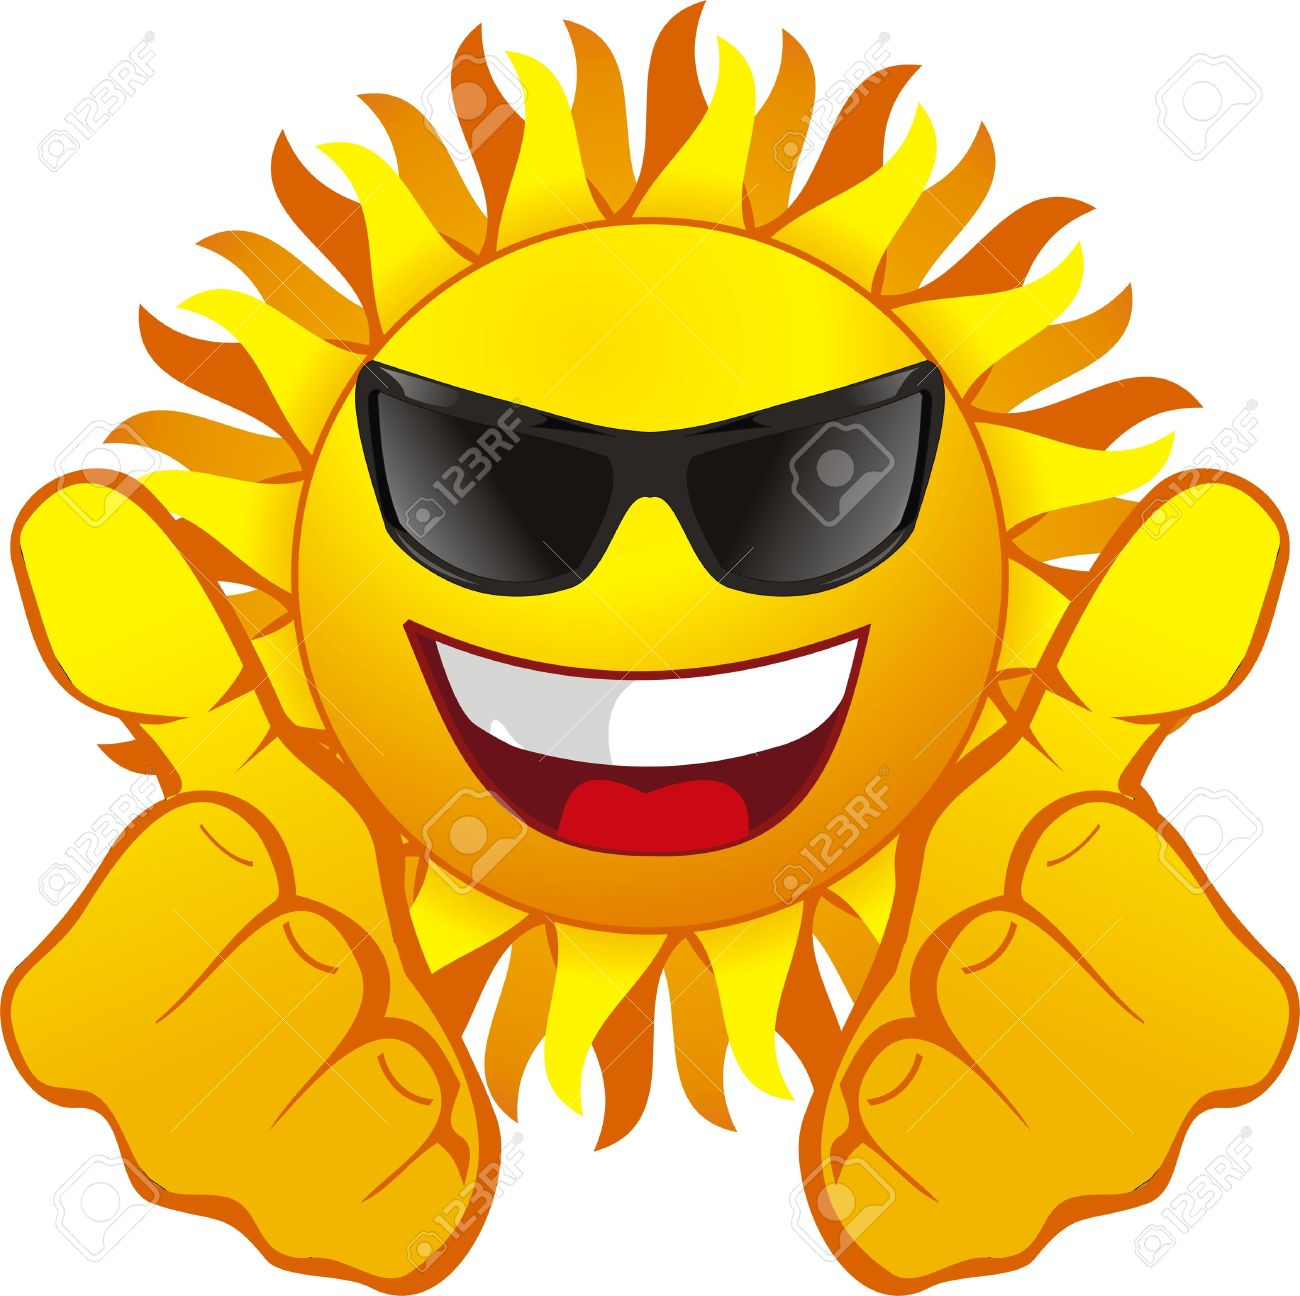 Sun With Sunglasses.